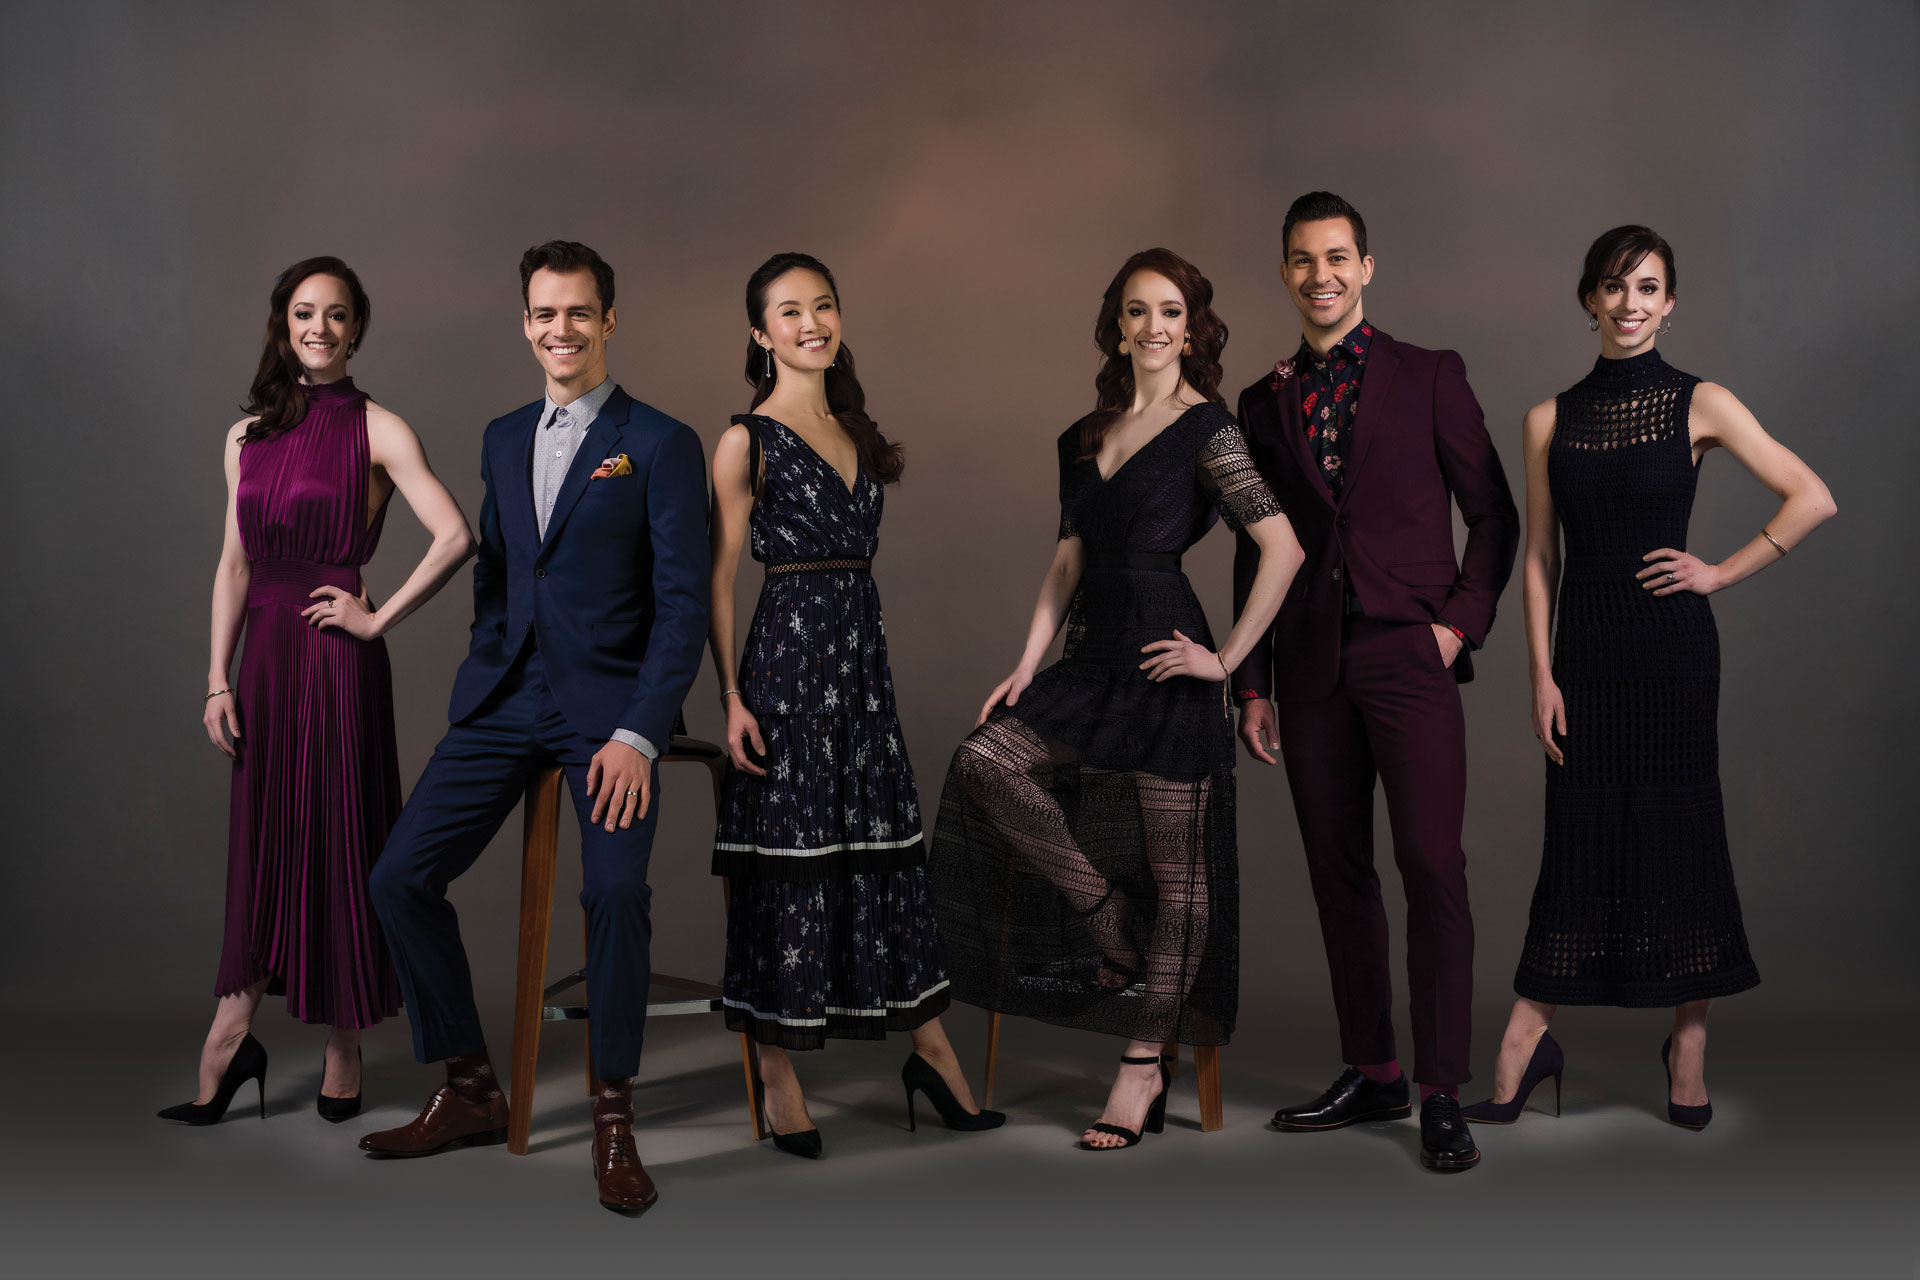 Alberta Ballet Dancers (from left to right) Alexandra Gibson, Garrett Groat, Mariko Kondo, Jennifer Gibson, Kelley McKinlay, Reilley McKinlay